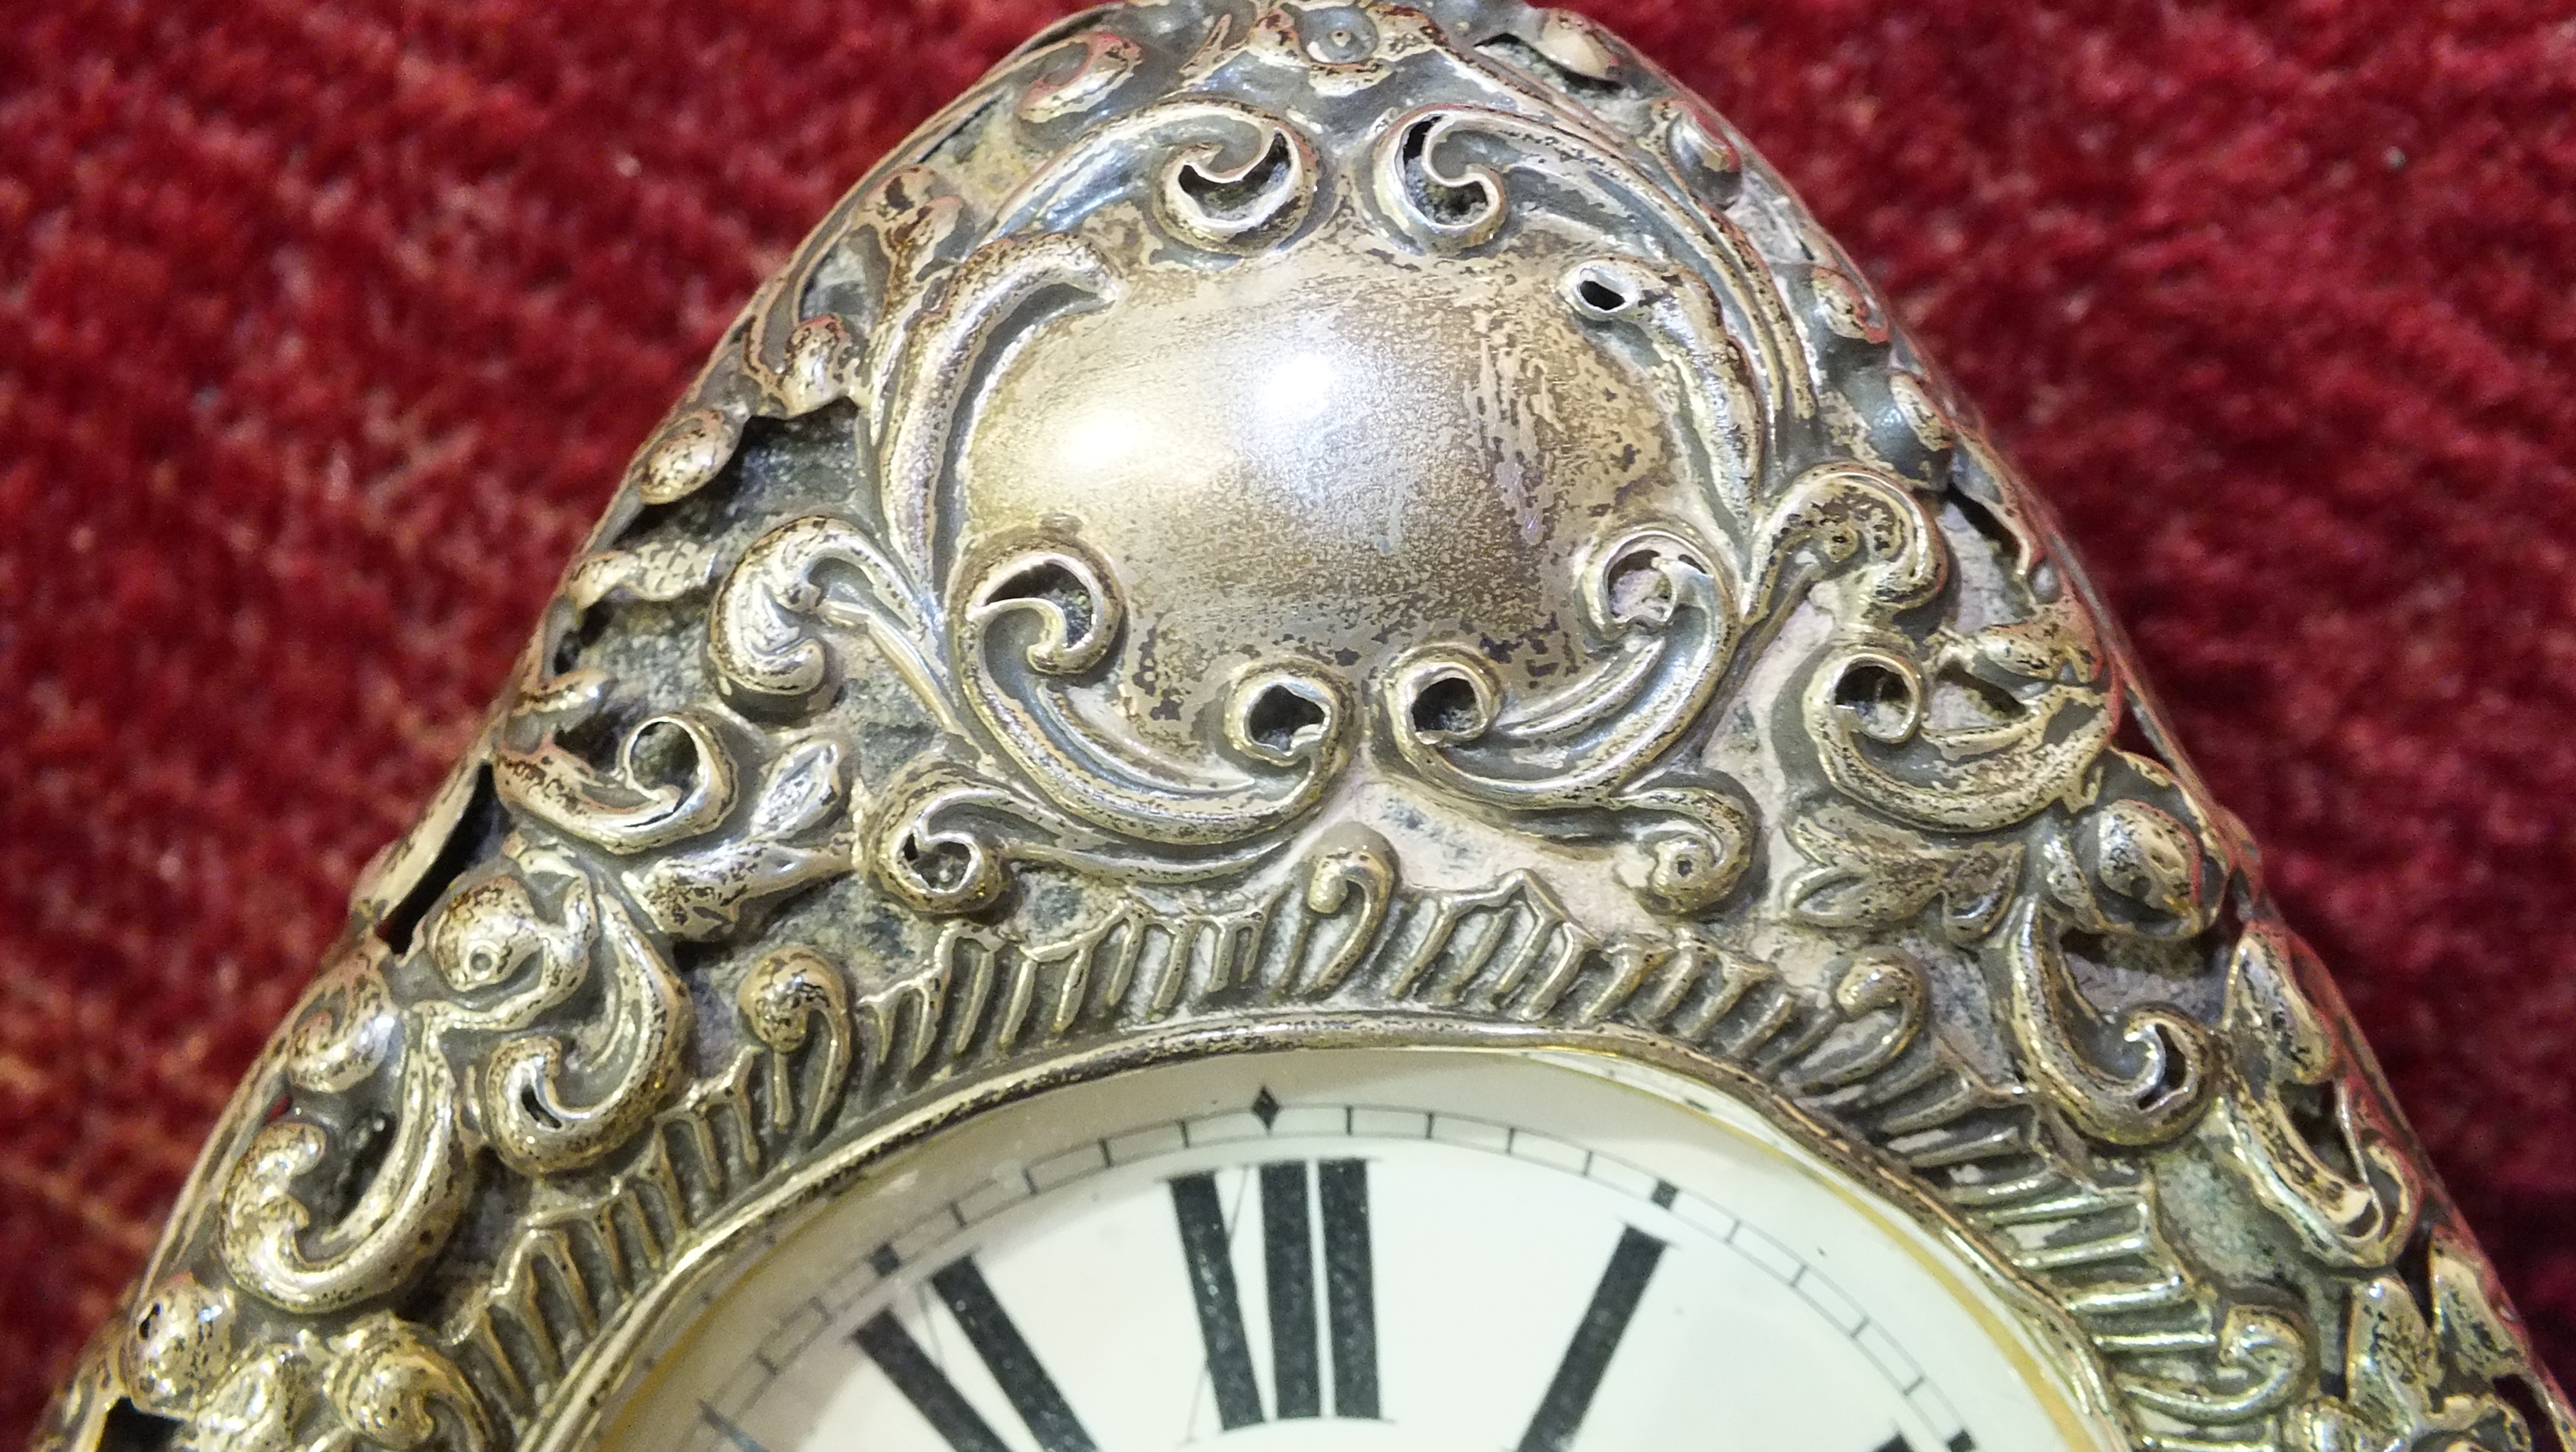 A silver embossed pocket watch holder of triangular form, Birmingham 1898, 11.5 x 11.5cm, (holes - Image 7 of 15